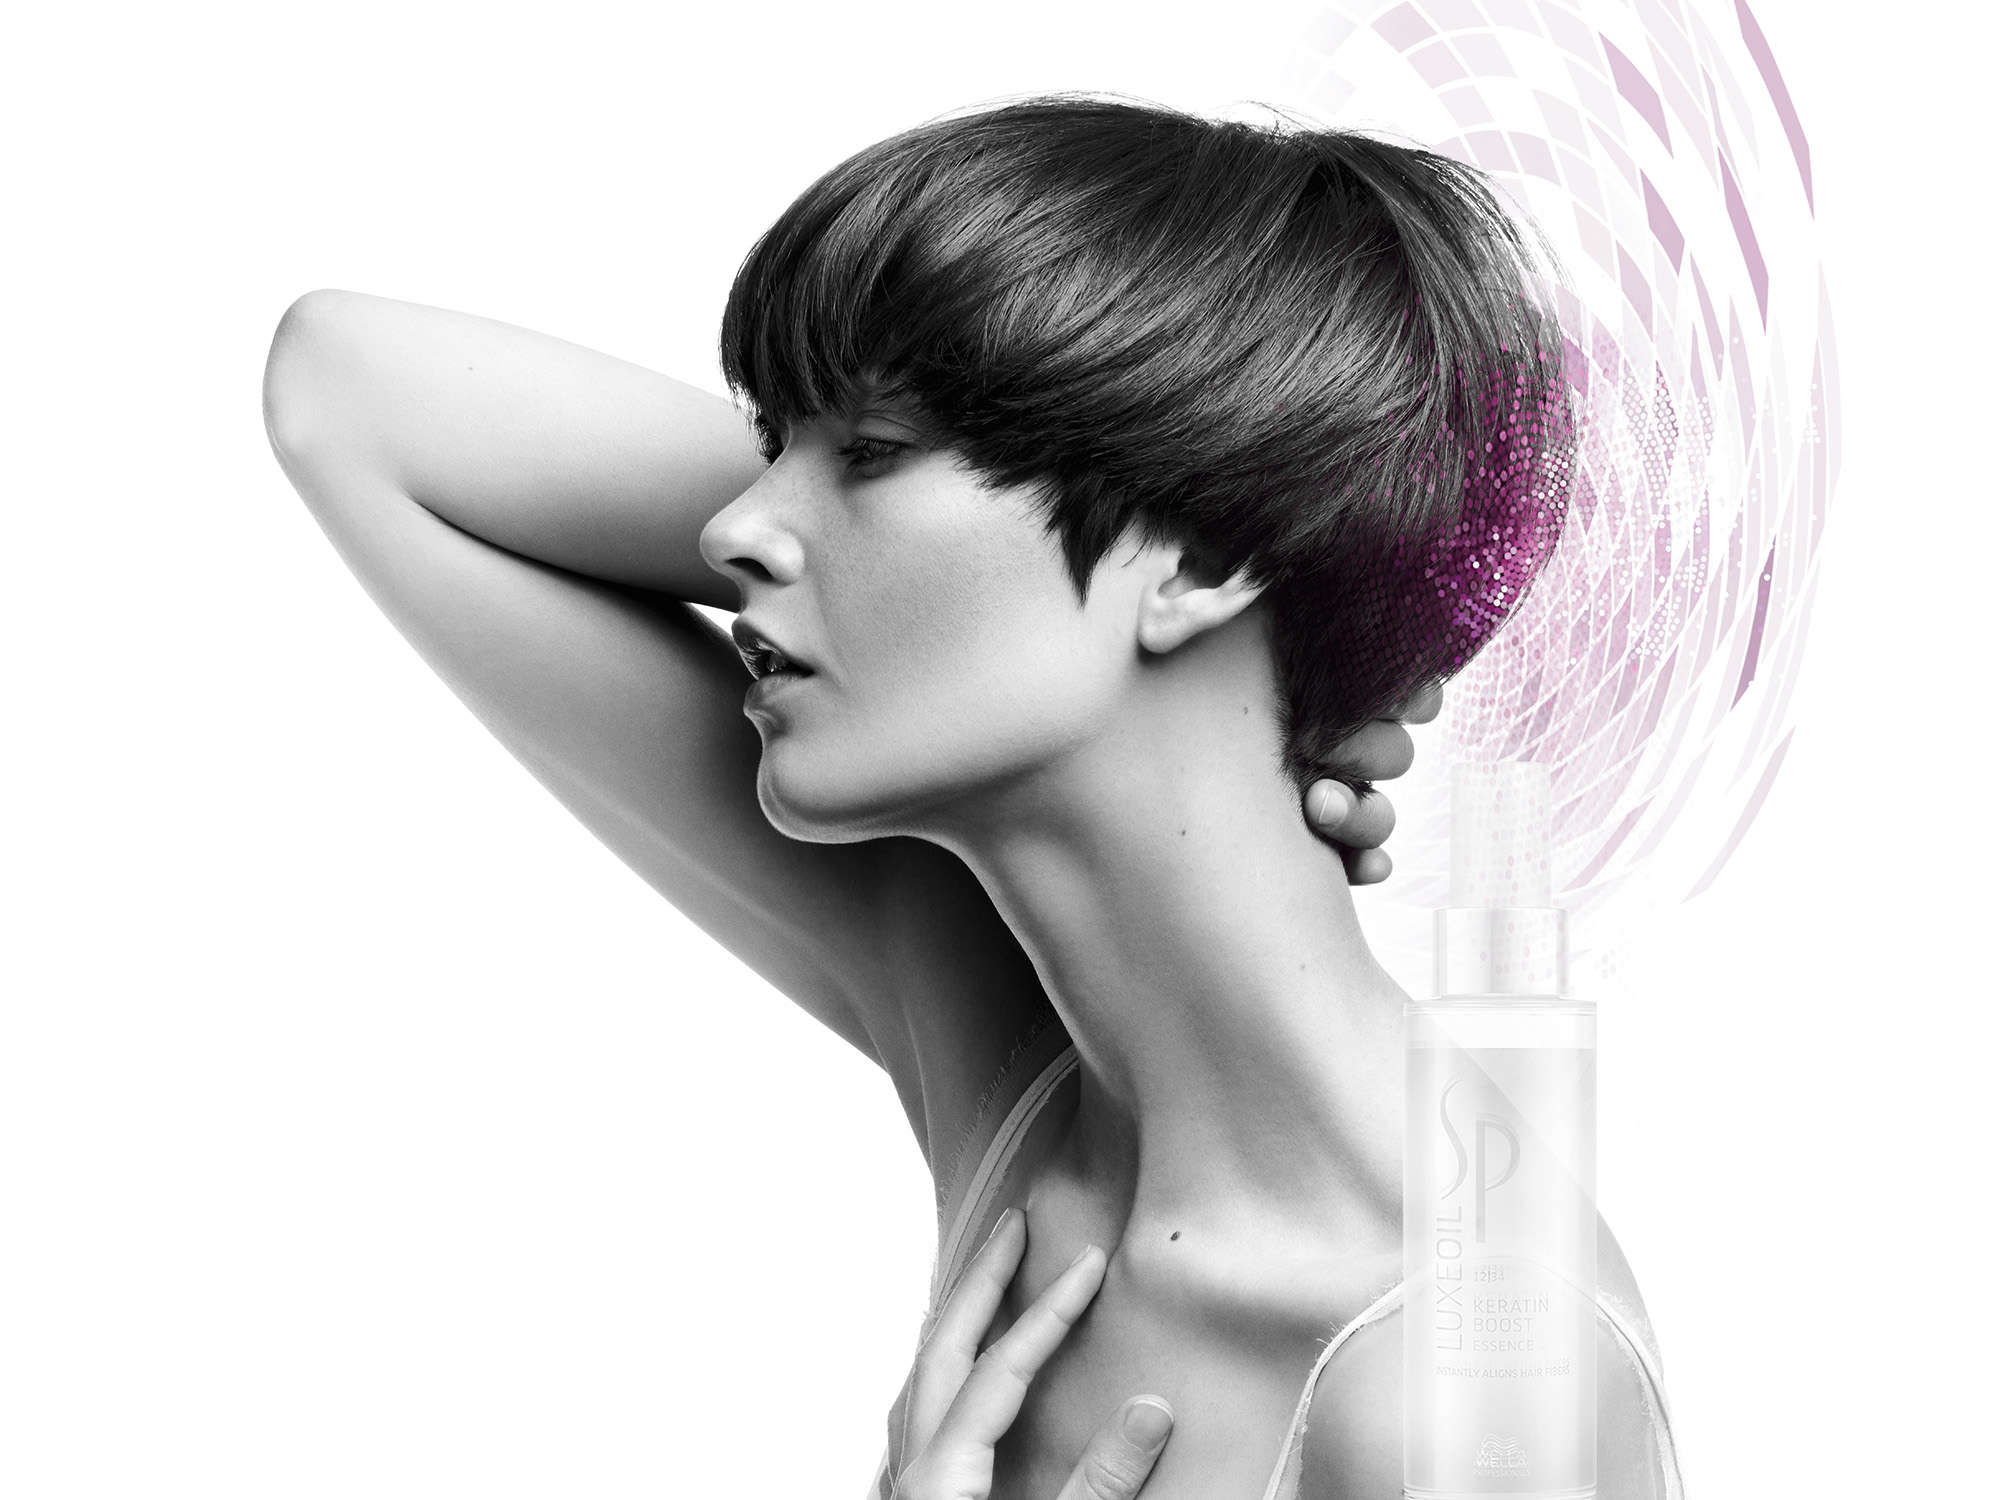 Wella SP |Photographer Victor Demarchelier | Agency Select World